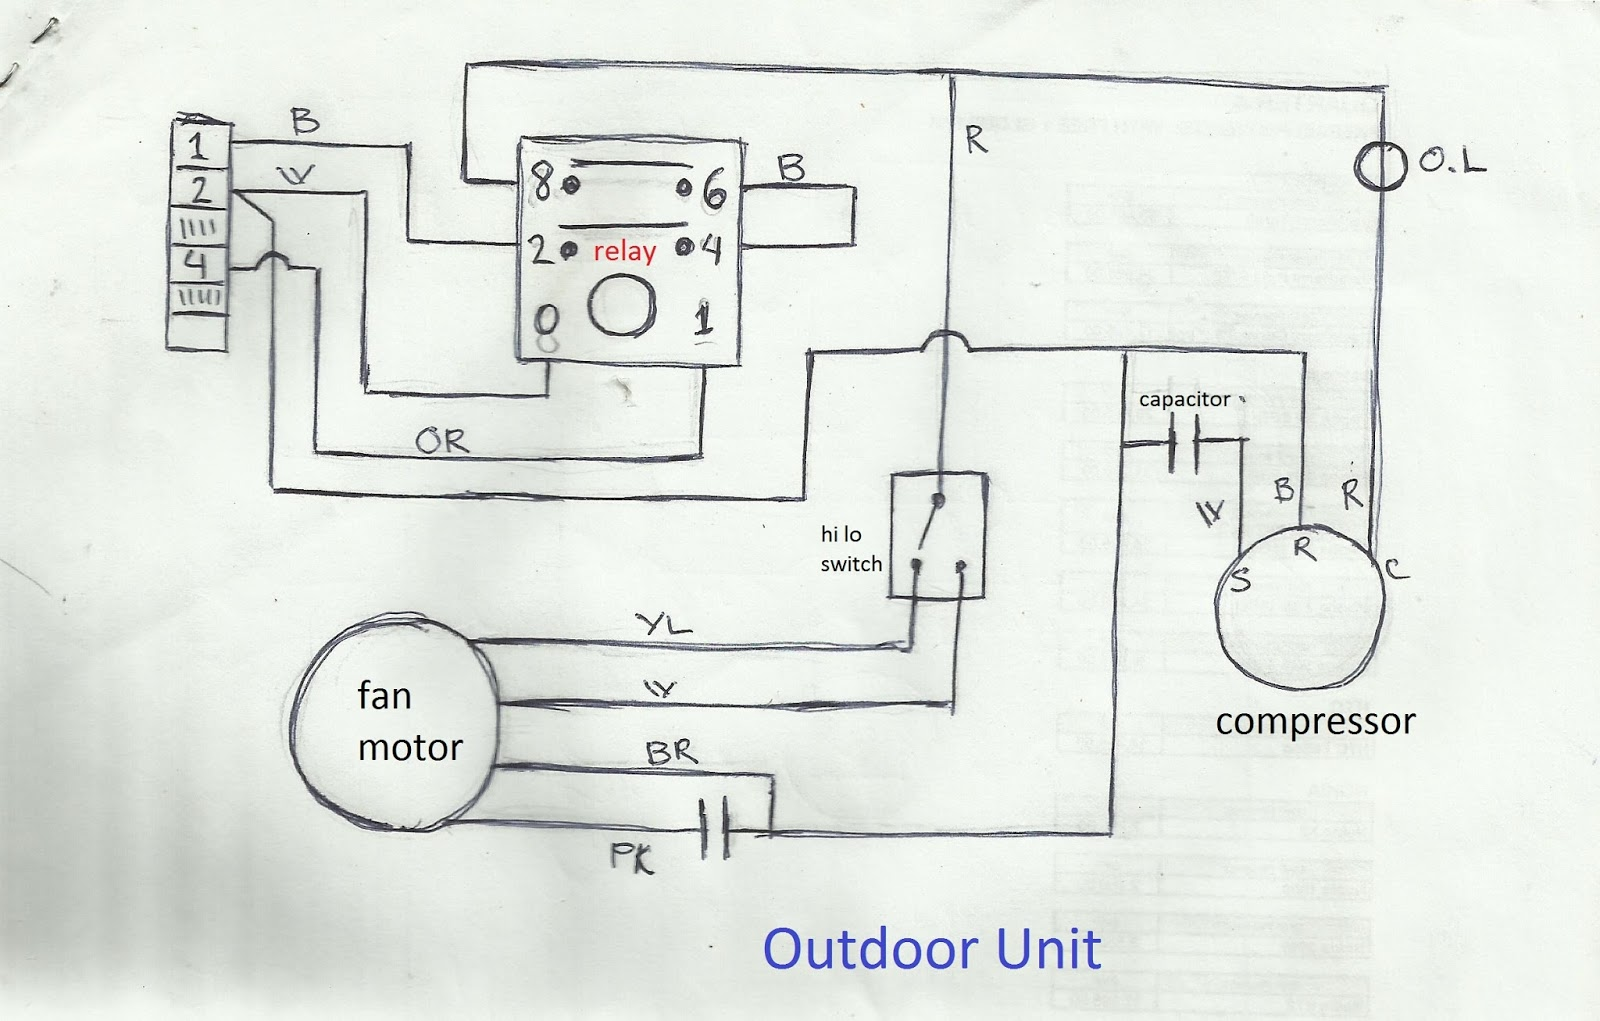 medium resolution of air conditioner fan wiring diagram wiring library pressor relay wiring diagrams in addition trane ac unit wiring diagram